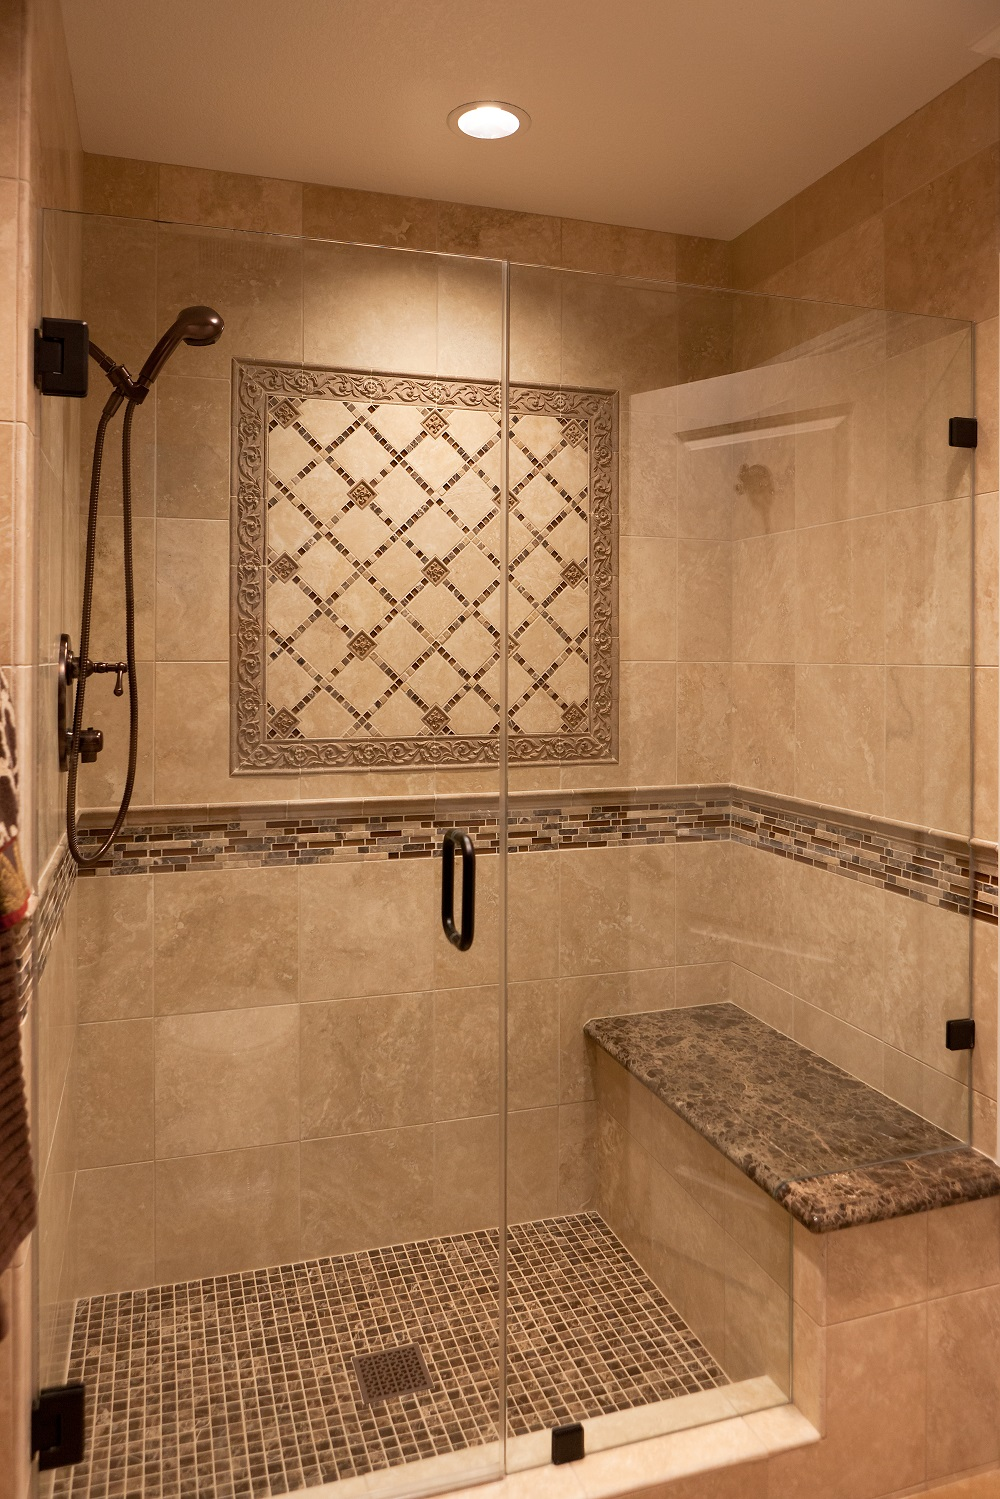 How Long Does It Take To Renovate A Bathroom Mira Loma Ca